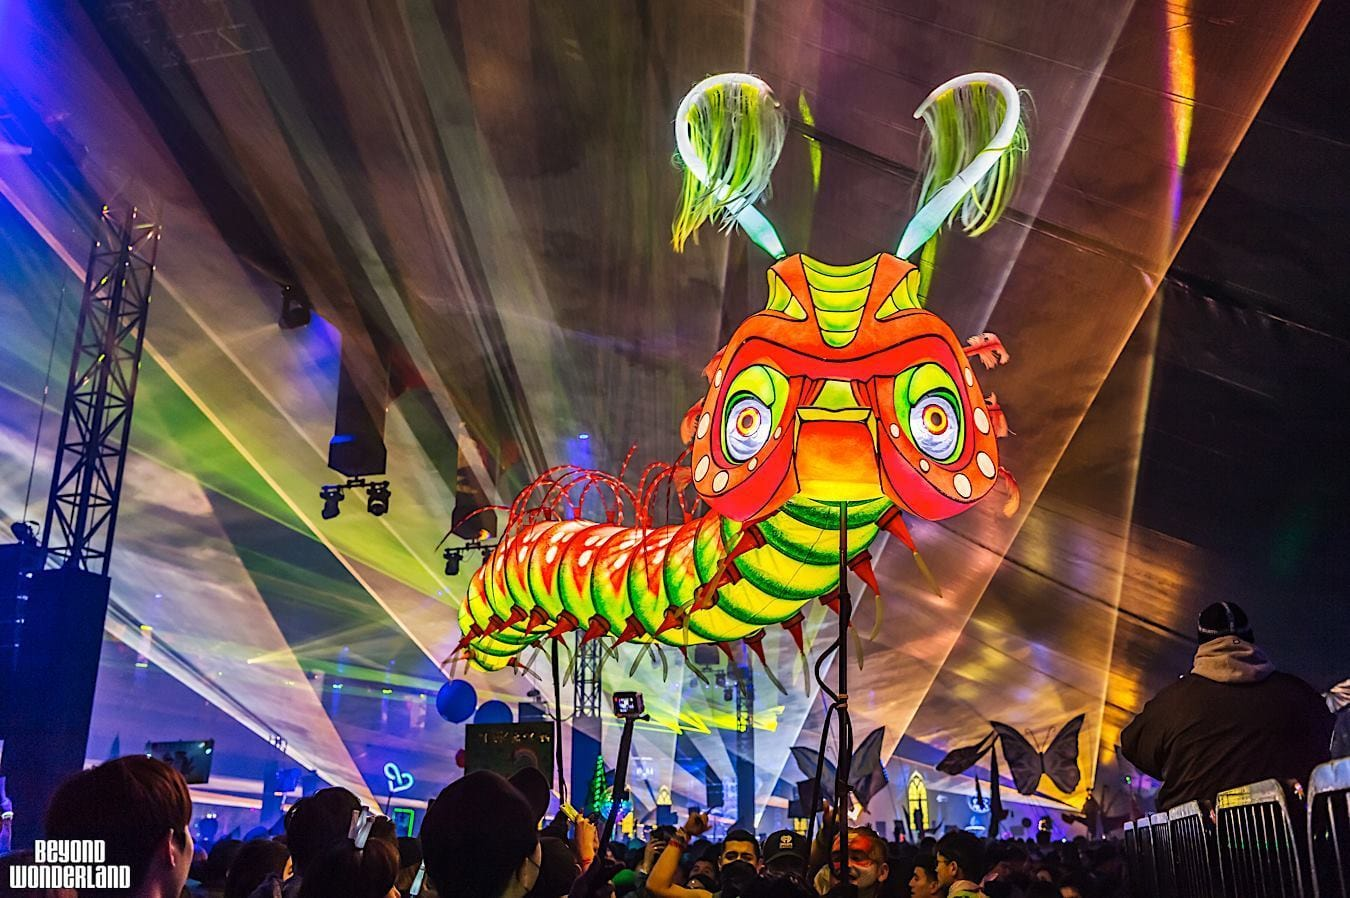 Beyond Wonder-ful Sets to See at Beyond Wonderland 2019